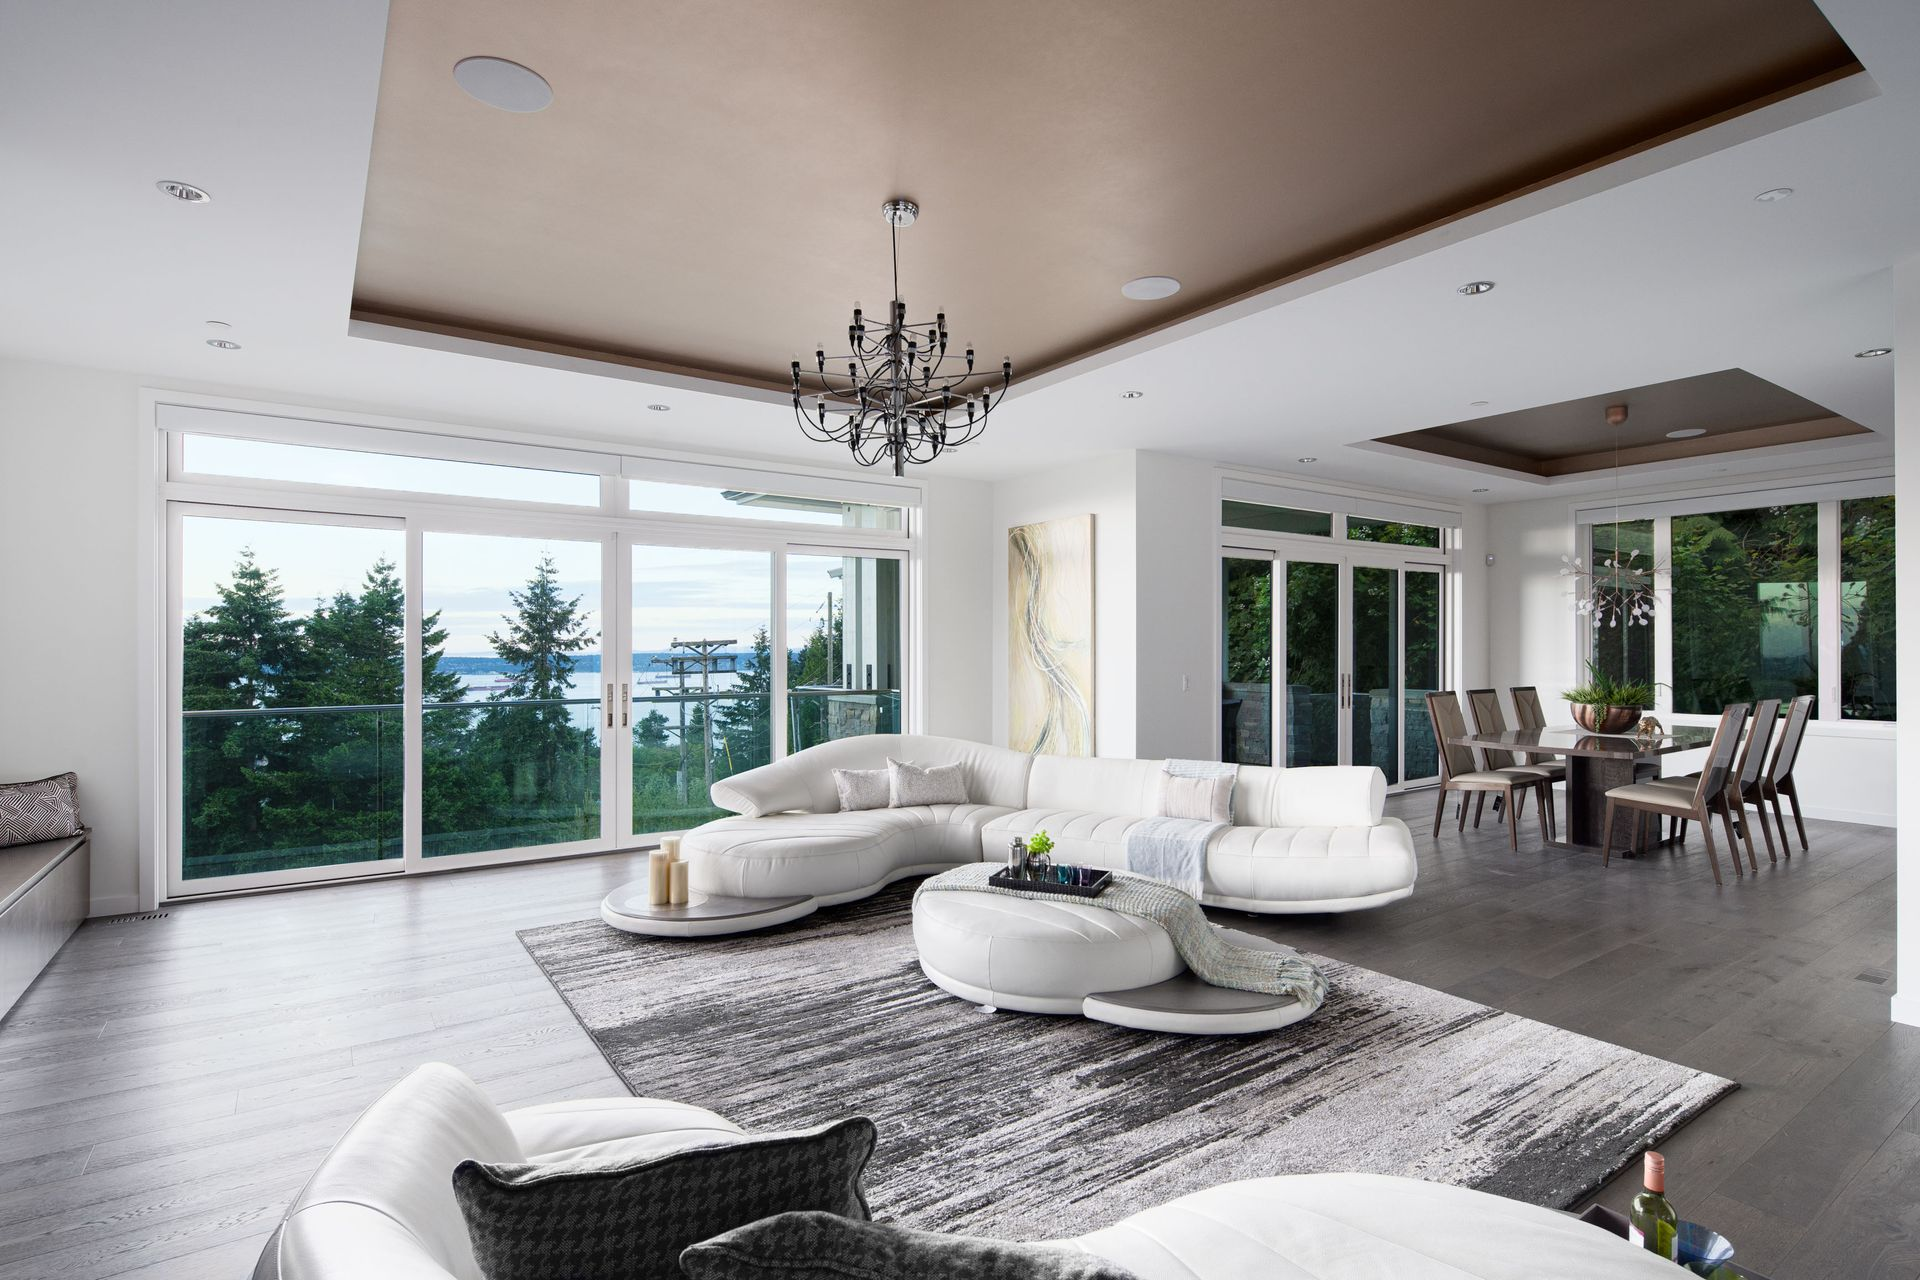 union-crt-2101-west-vancouver-tandy-gao-staging-3 at 2101 Union Court, Panorama Village, West Vancouver